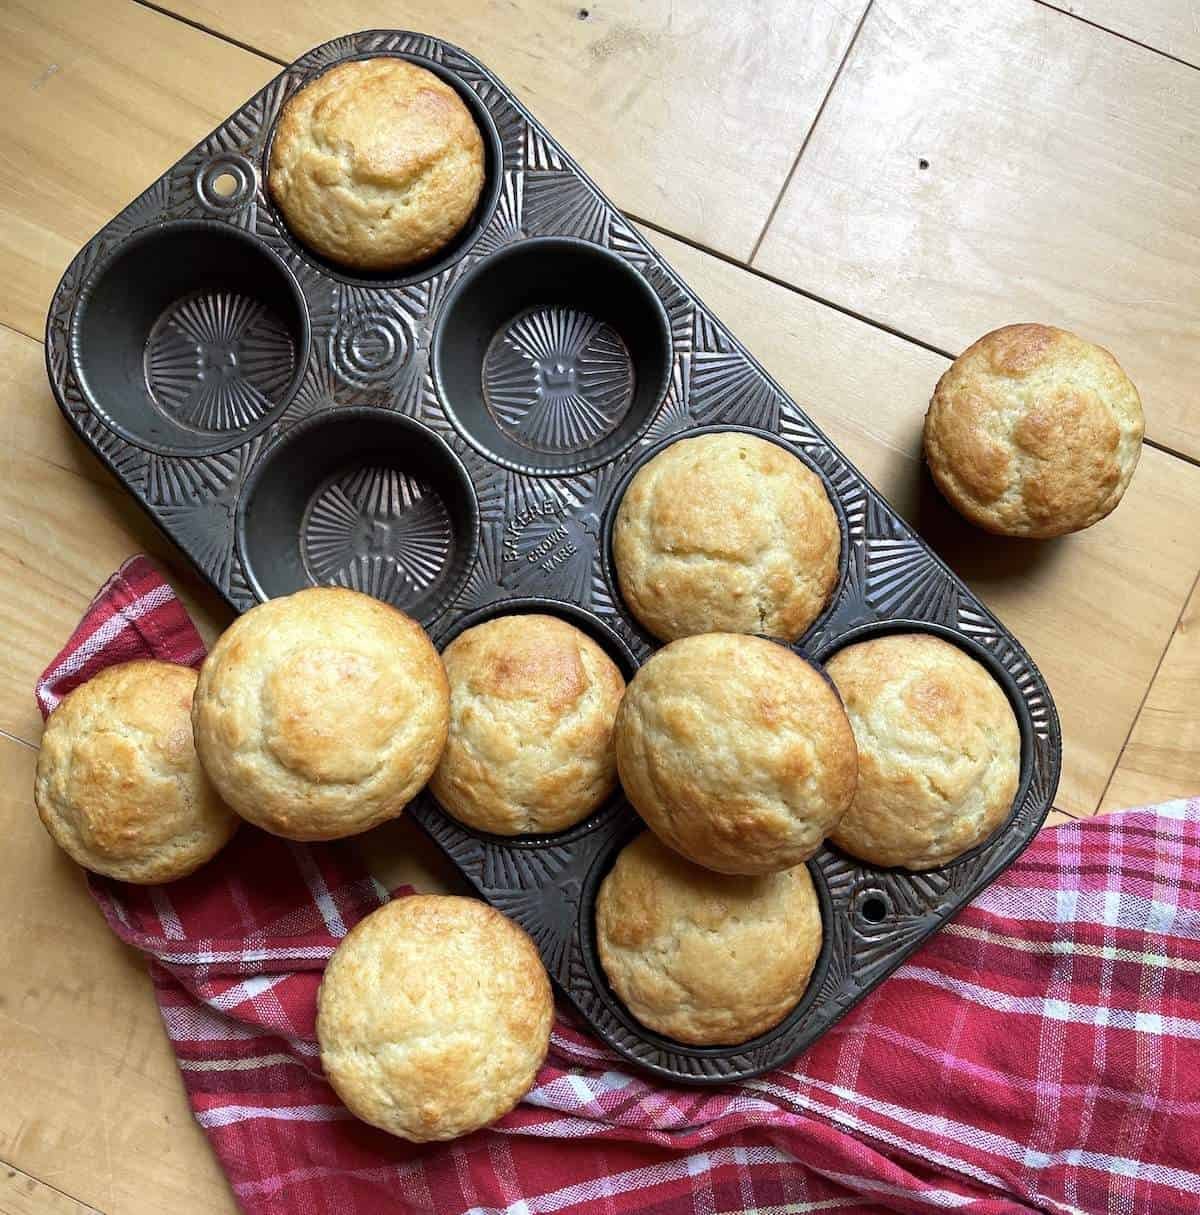 A pile of buttermilk muffins on a muffin tin with a plaid napkin.